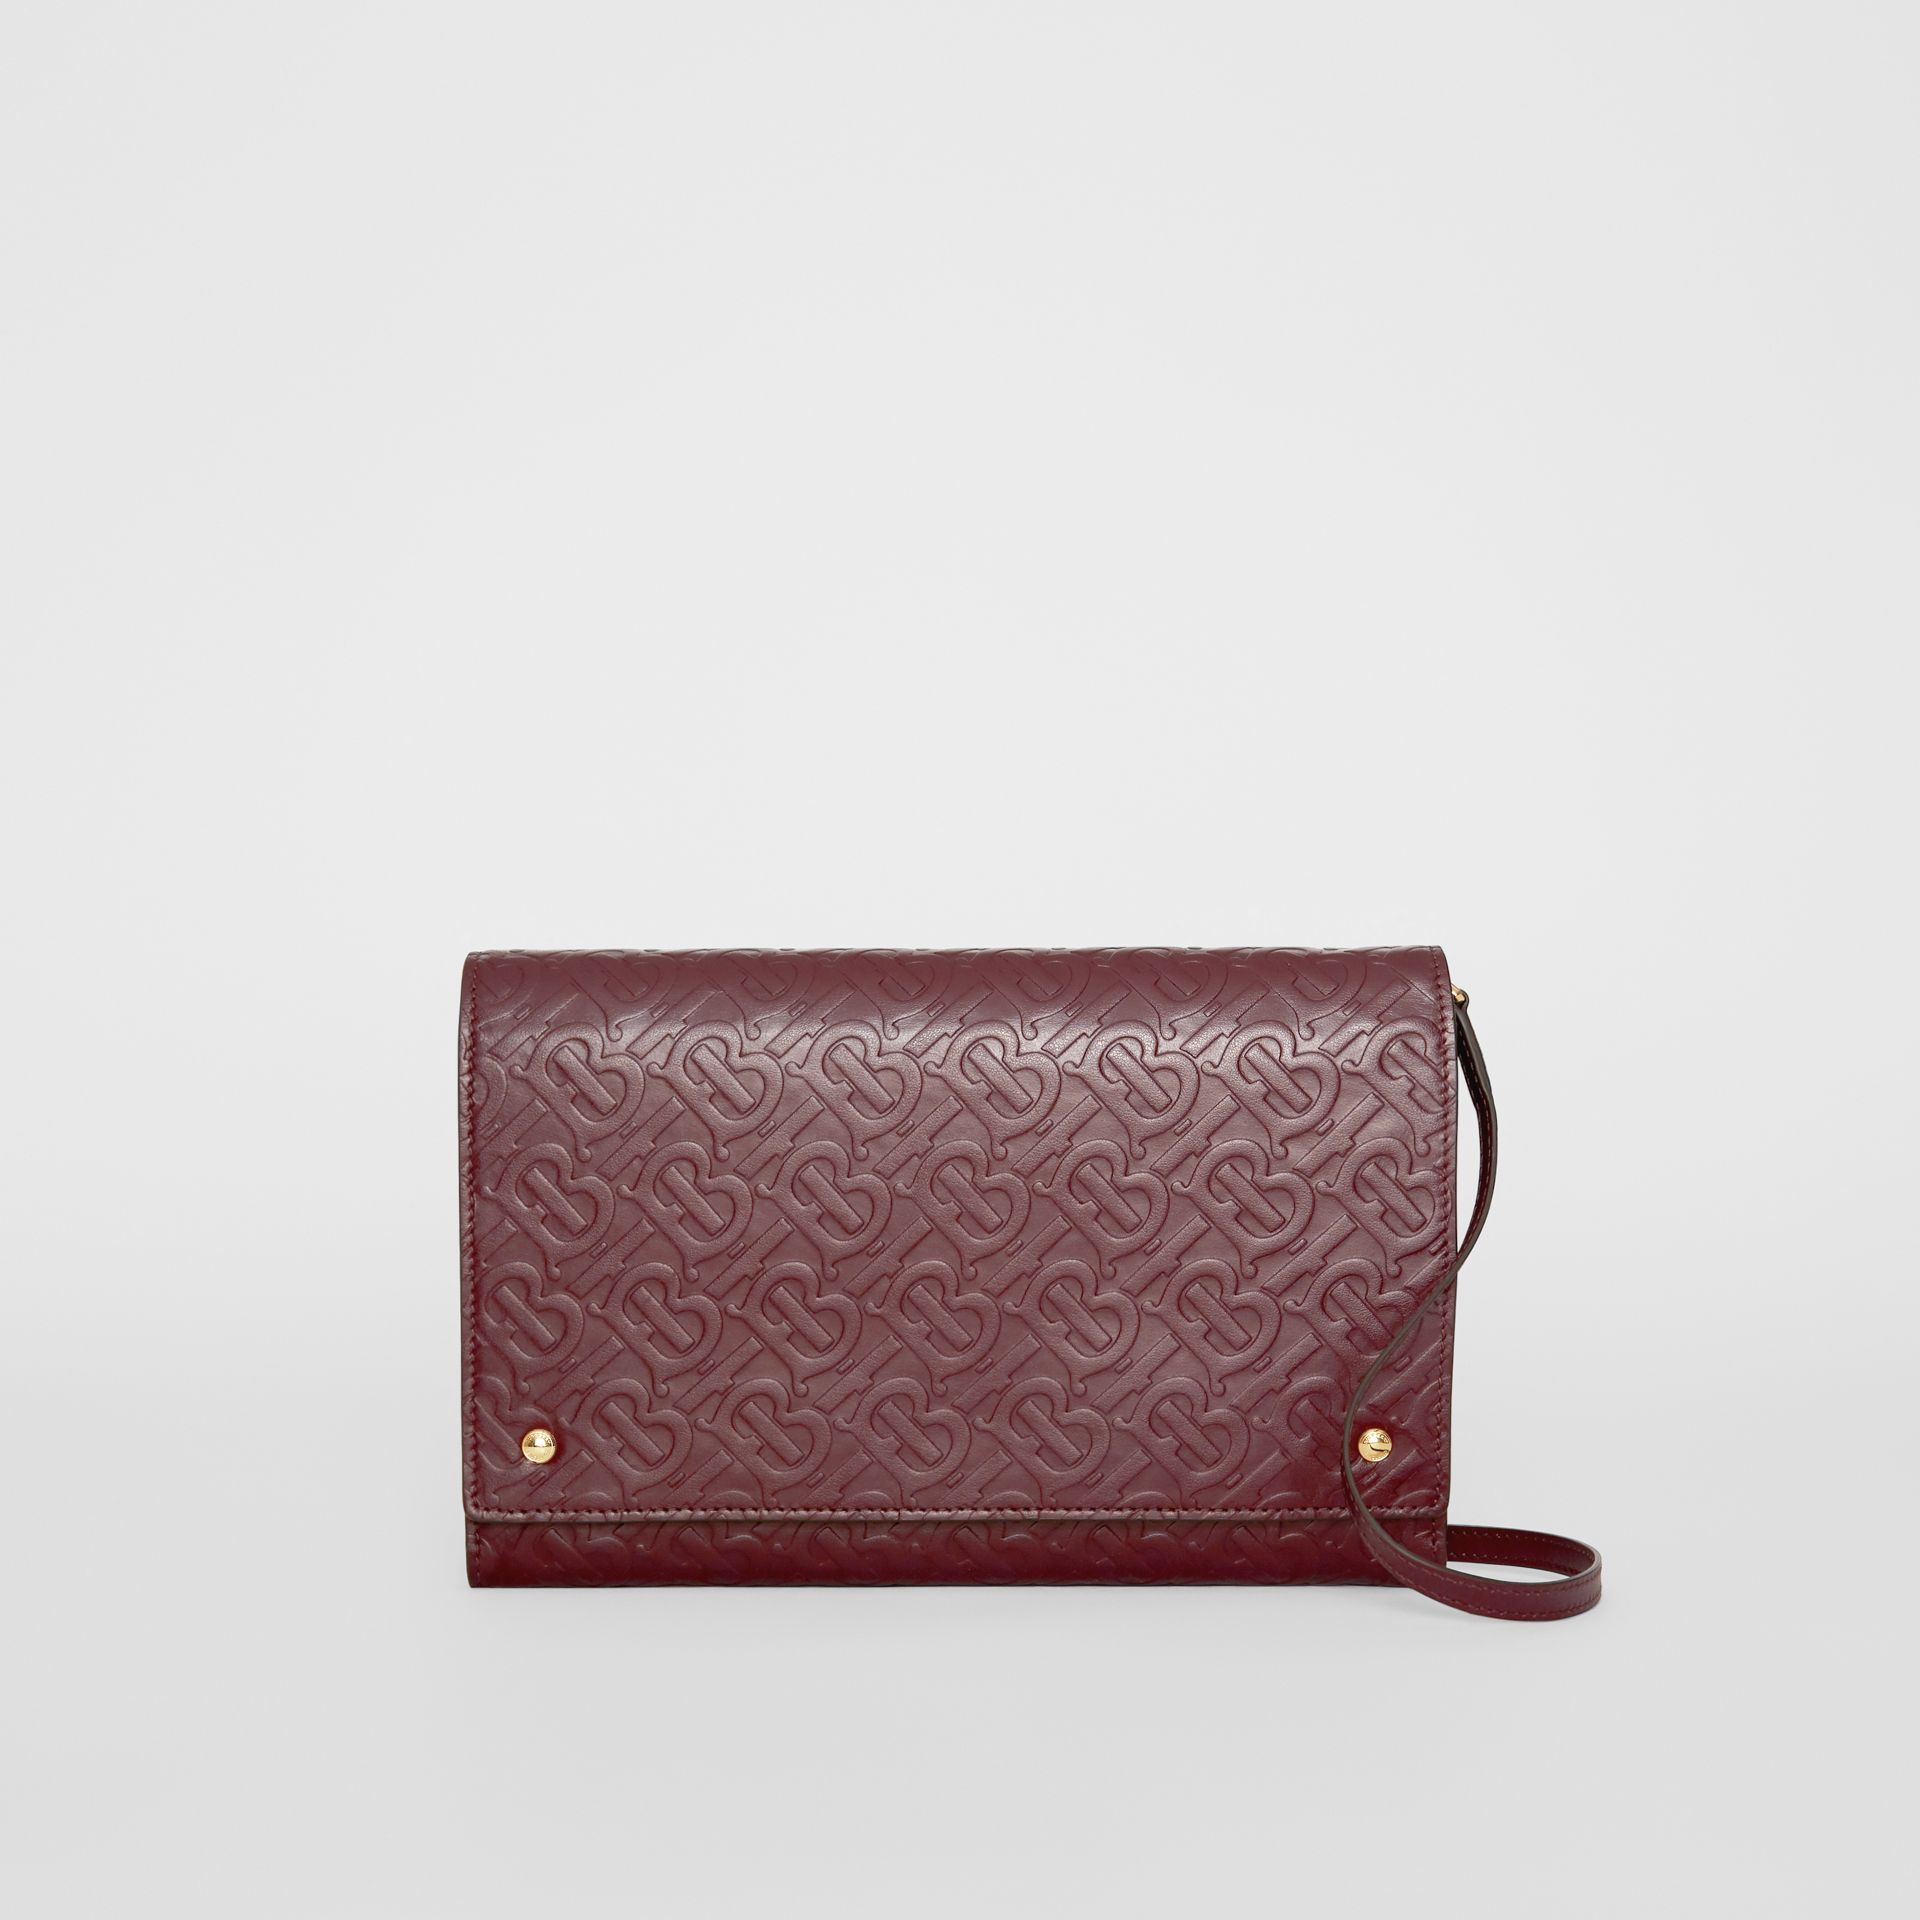 Monogram Leather Bag with Detachable Strap in Oxblood - Women | Burberry Australia - gallery image 0